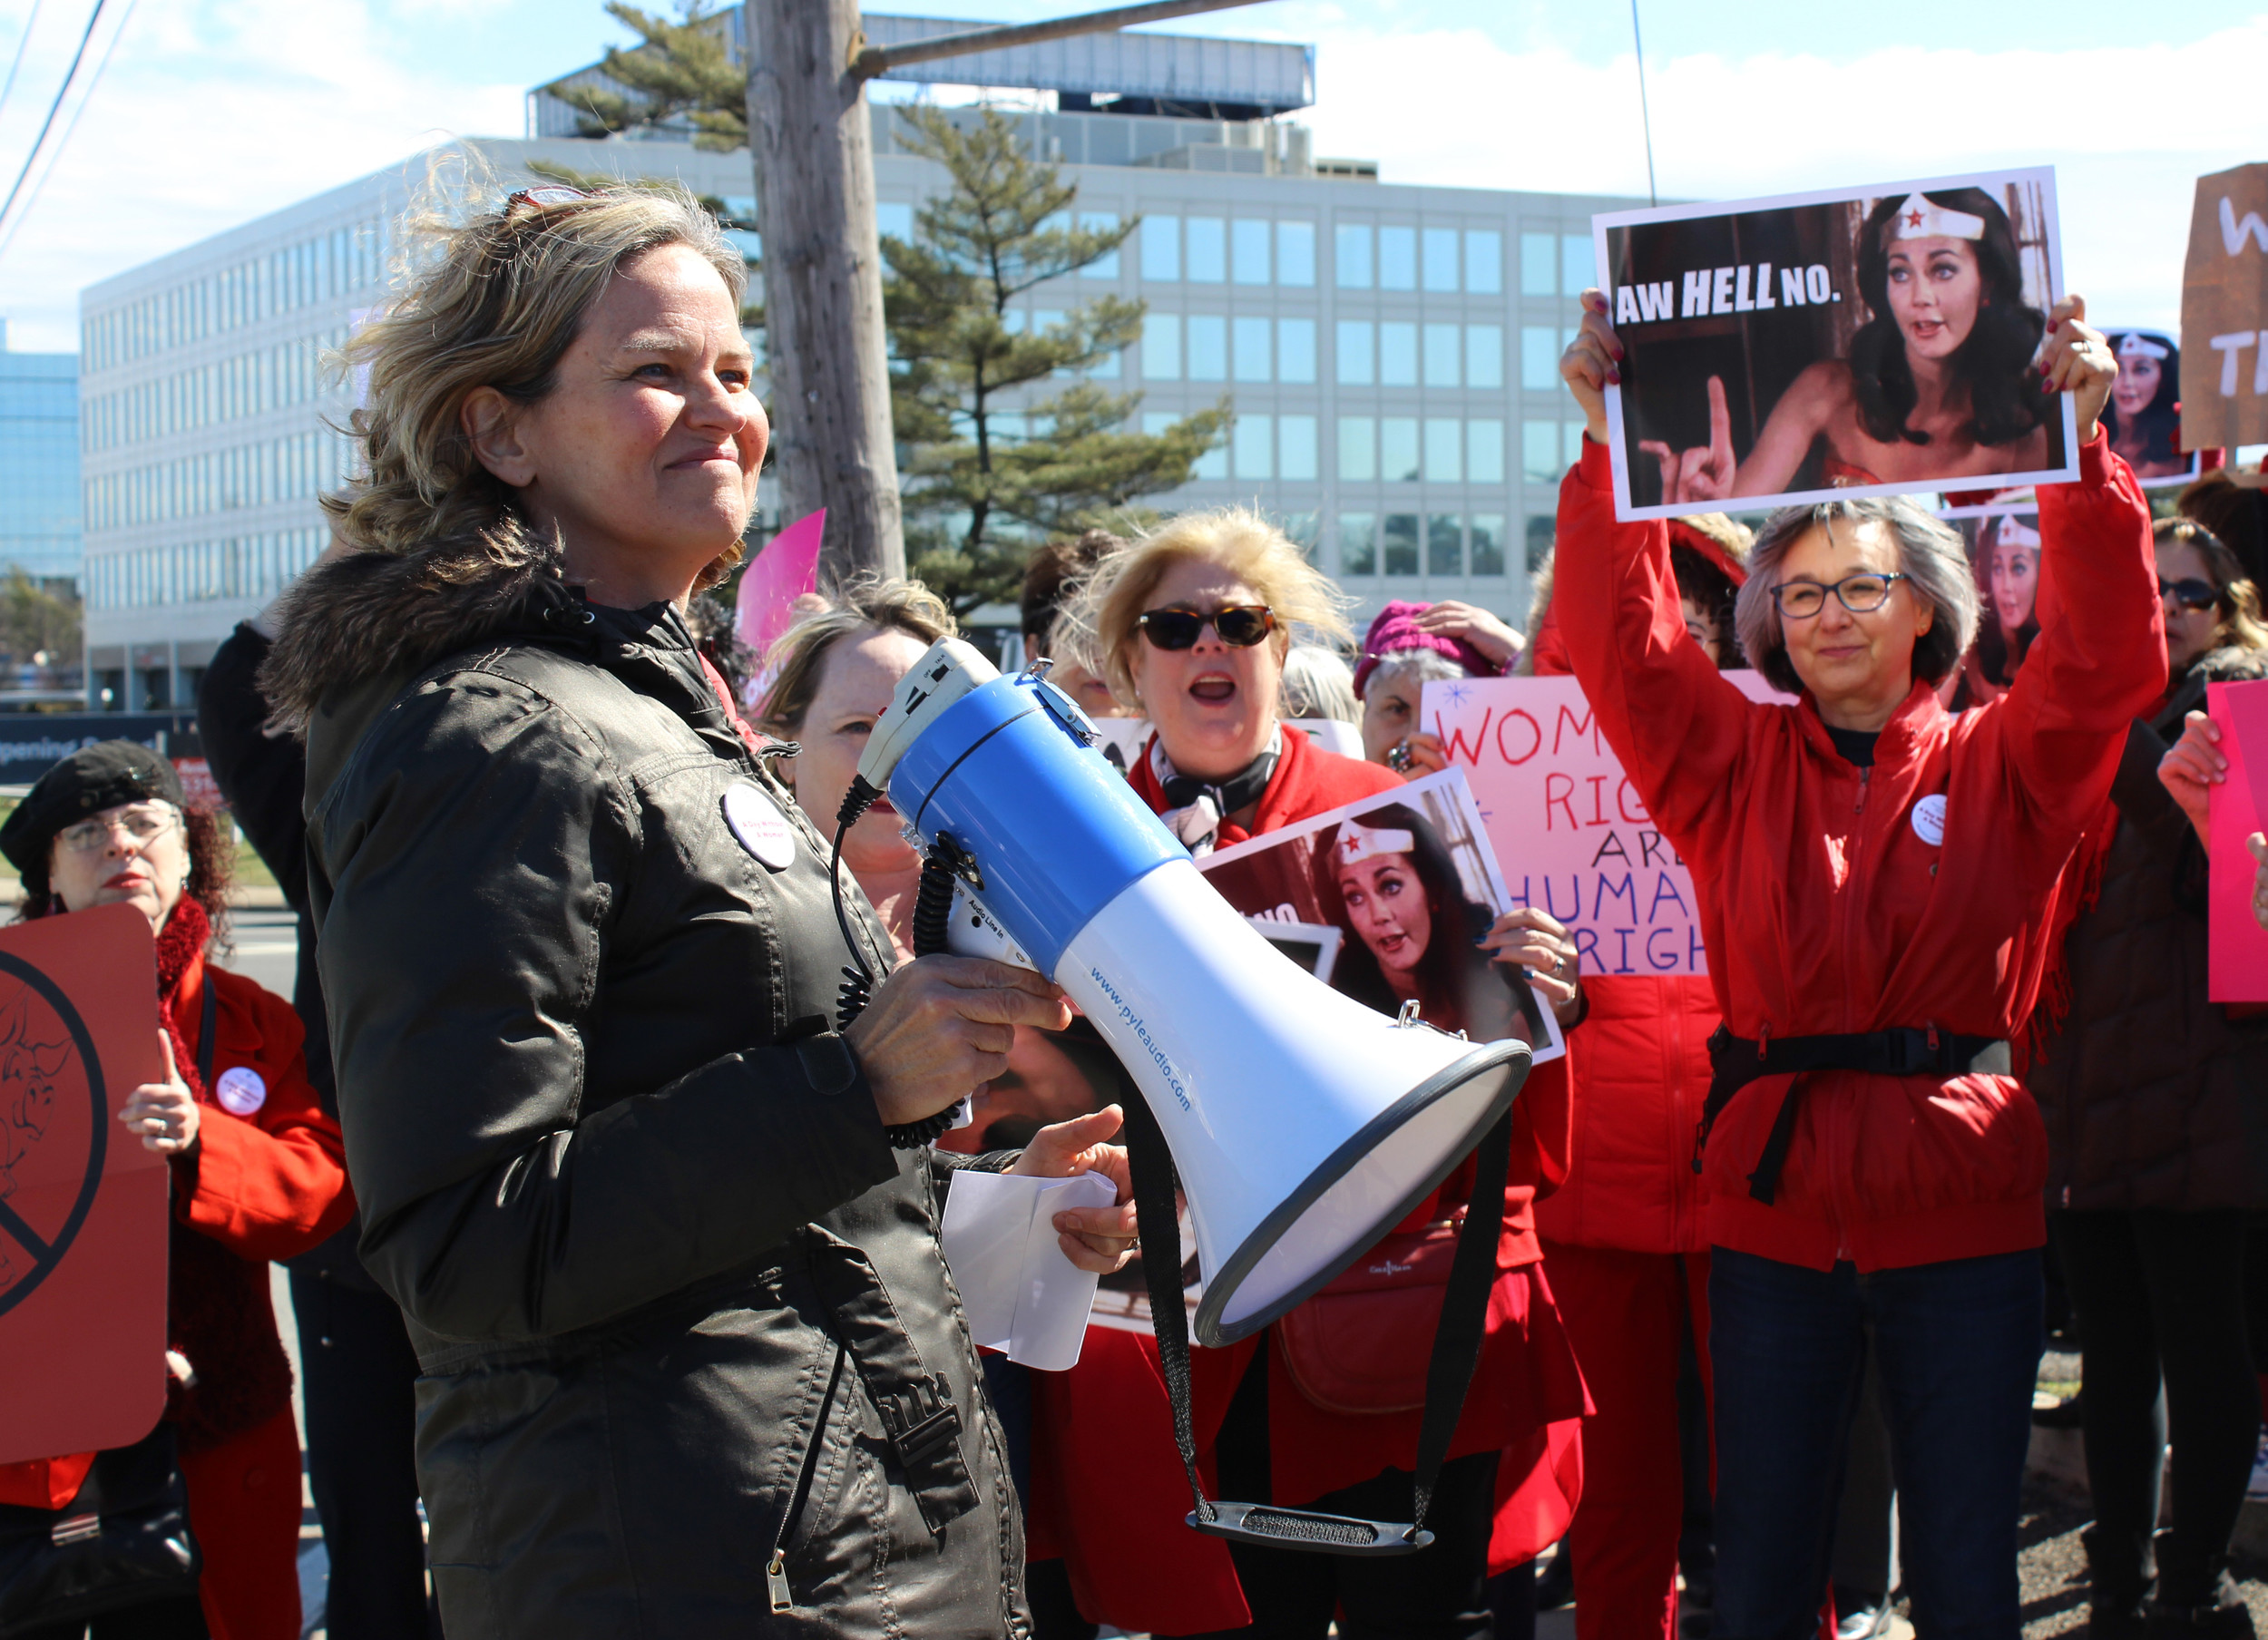 Nassau County Legislator Laura Curran urged a crowd of cheering women to get involved in politics.